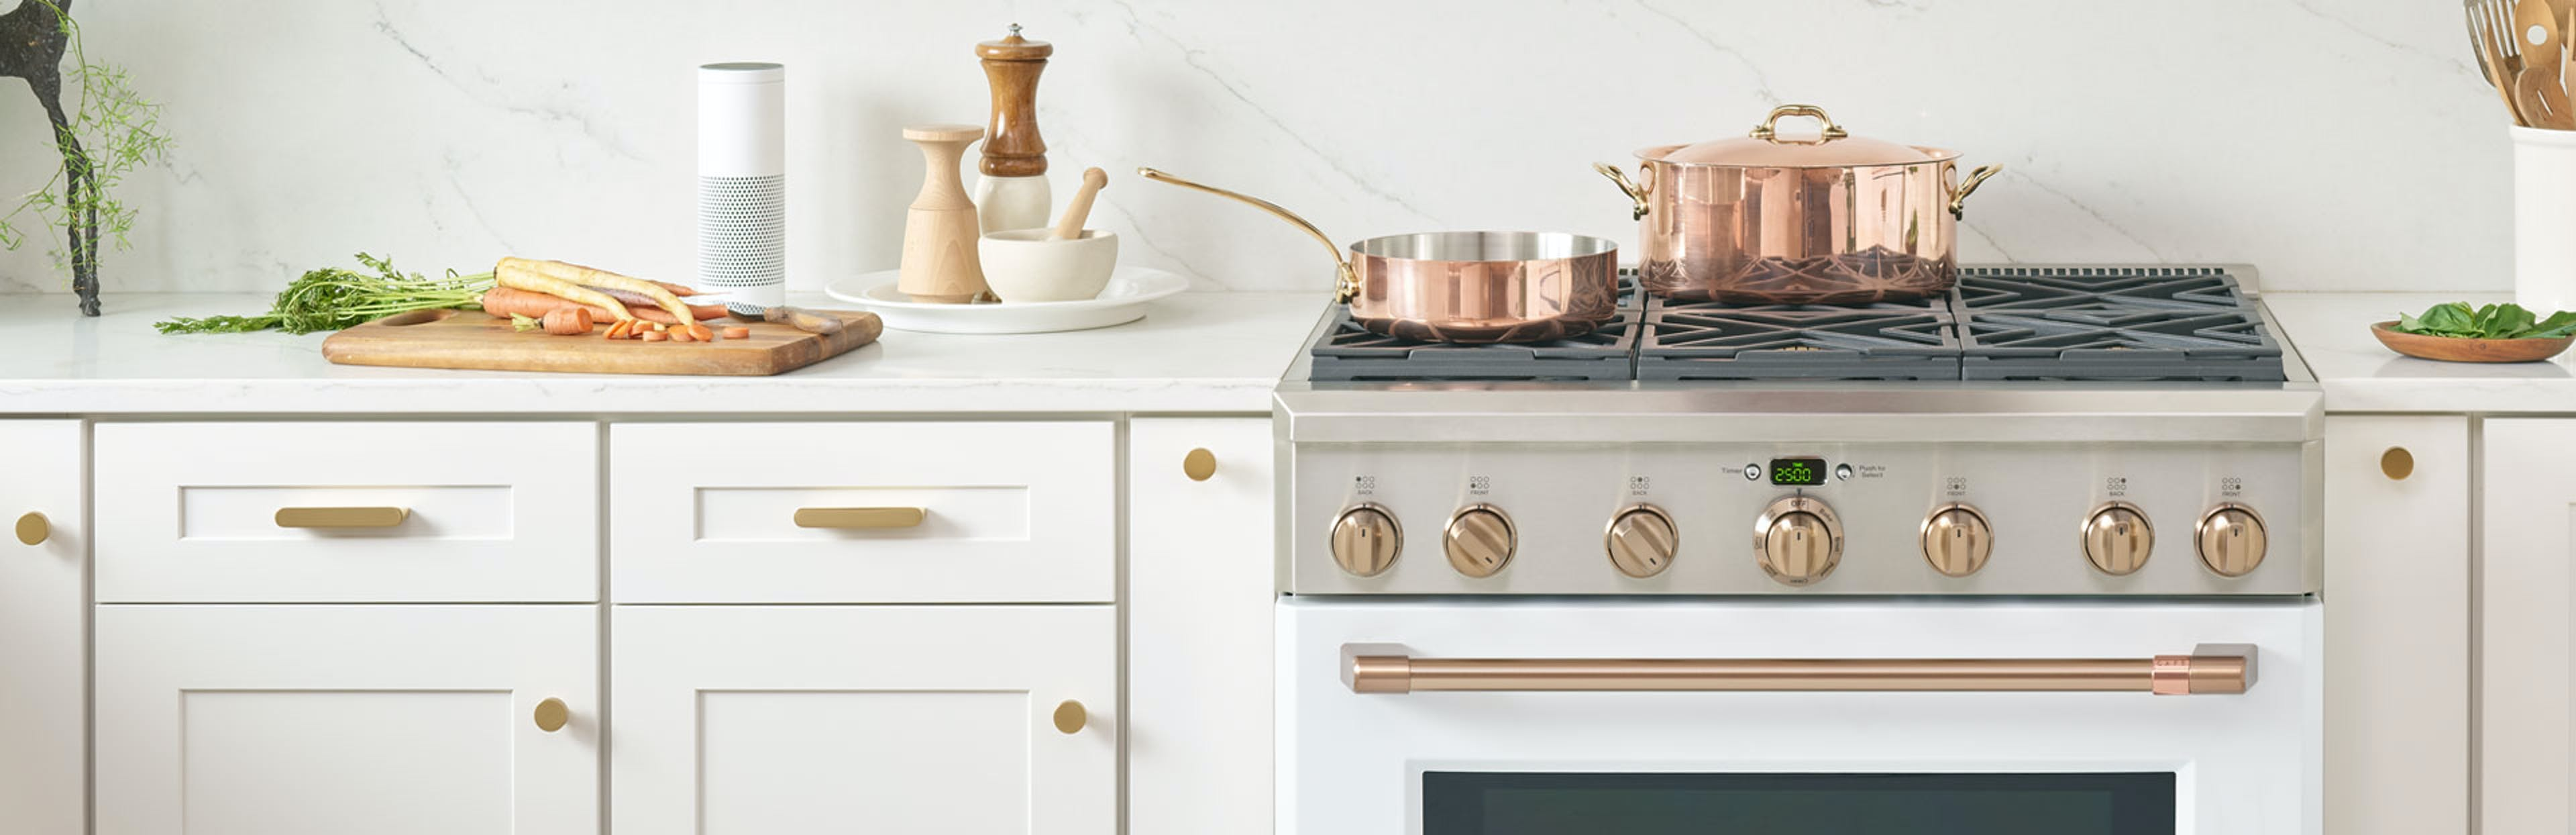 matte white pro range with copper pots